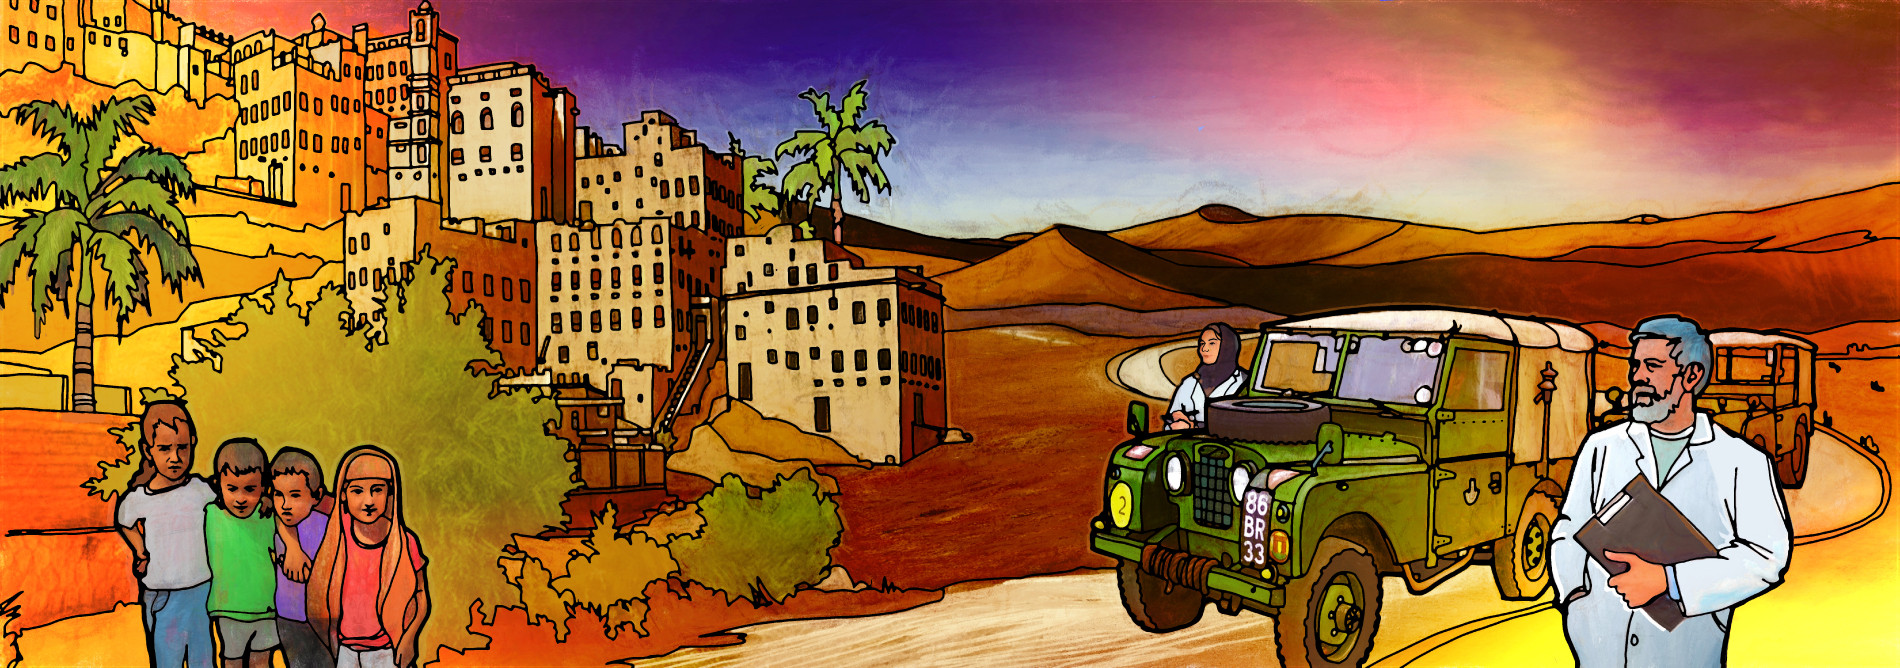 Illustration shows doctors in Libya looking at a city, with children standing in the foreground.